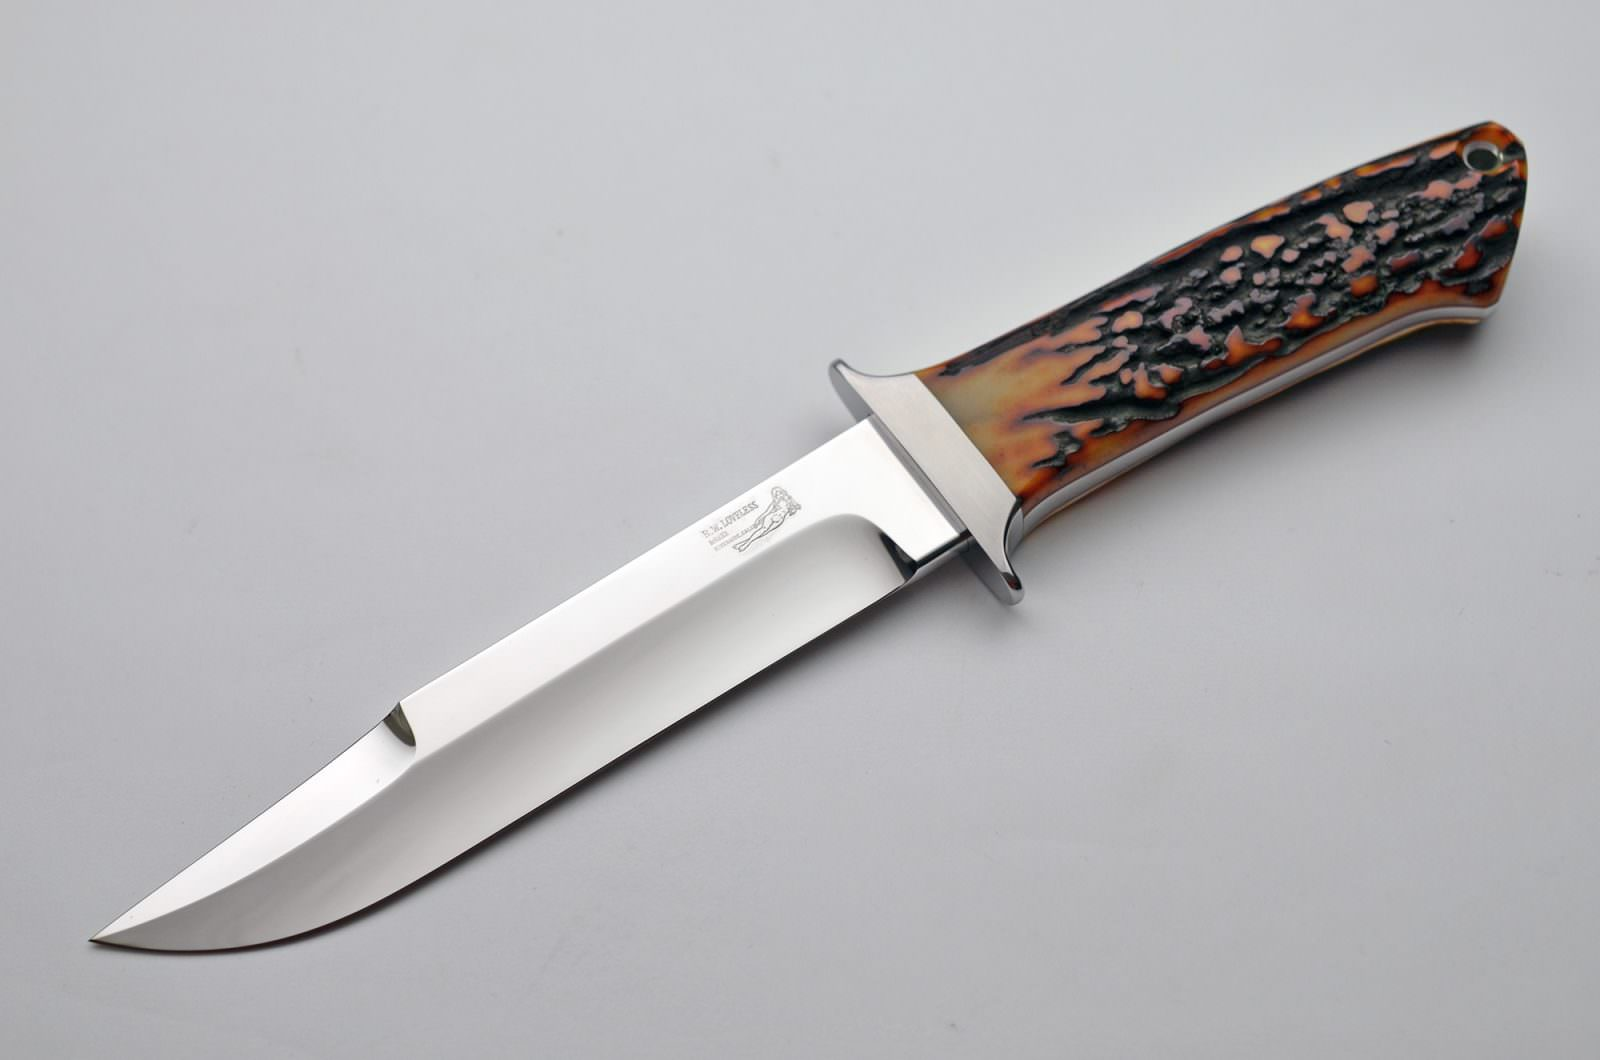 Cool Knife Cool Facts About Bowie Knives Exquisite Knives